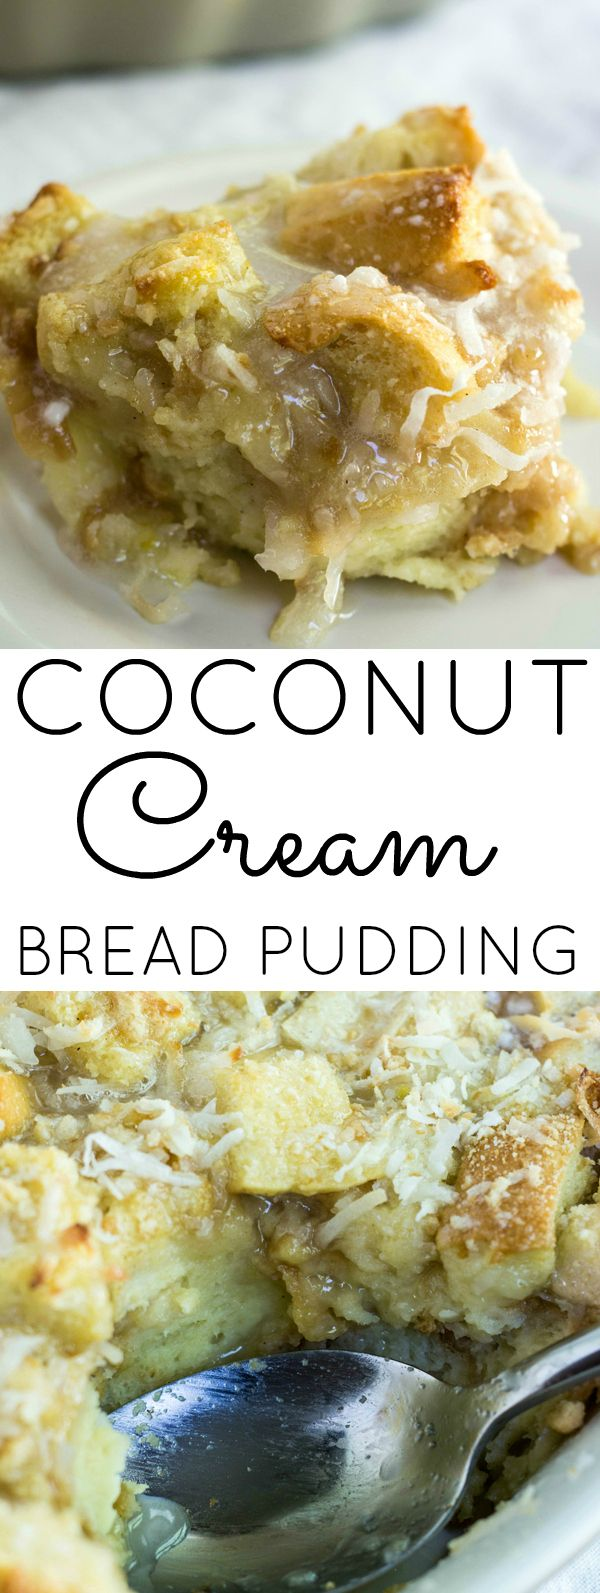 Coconut Cream Bread Pudding, a delicious twist to a classic!!